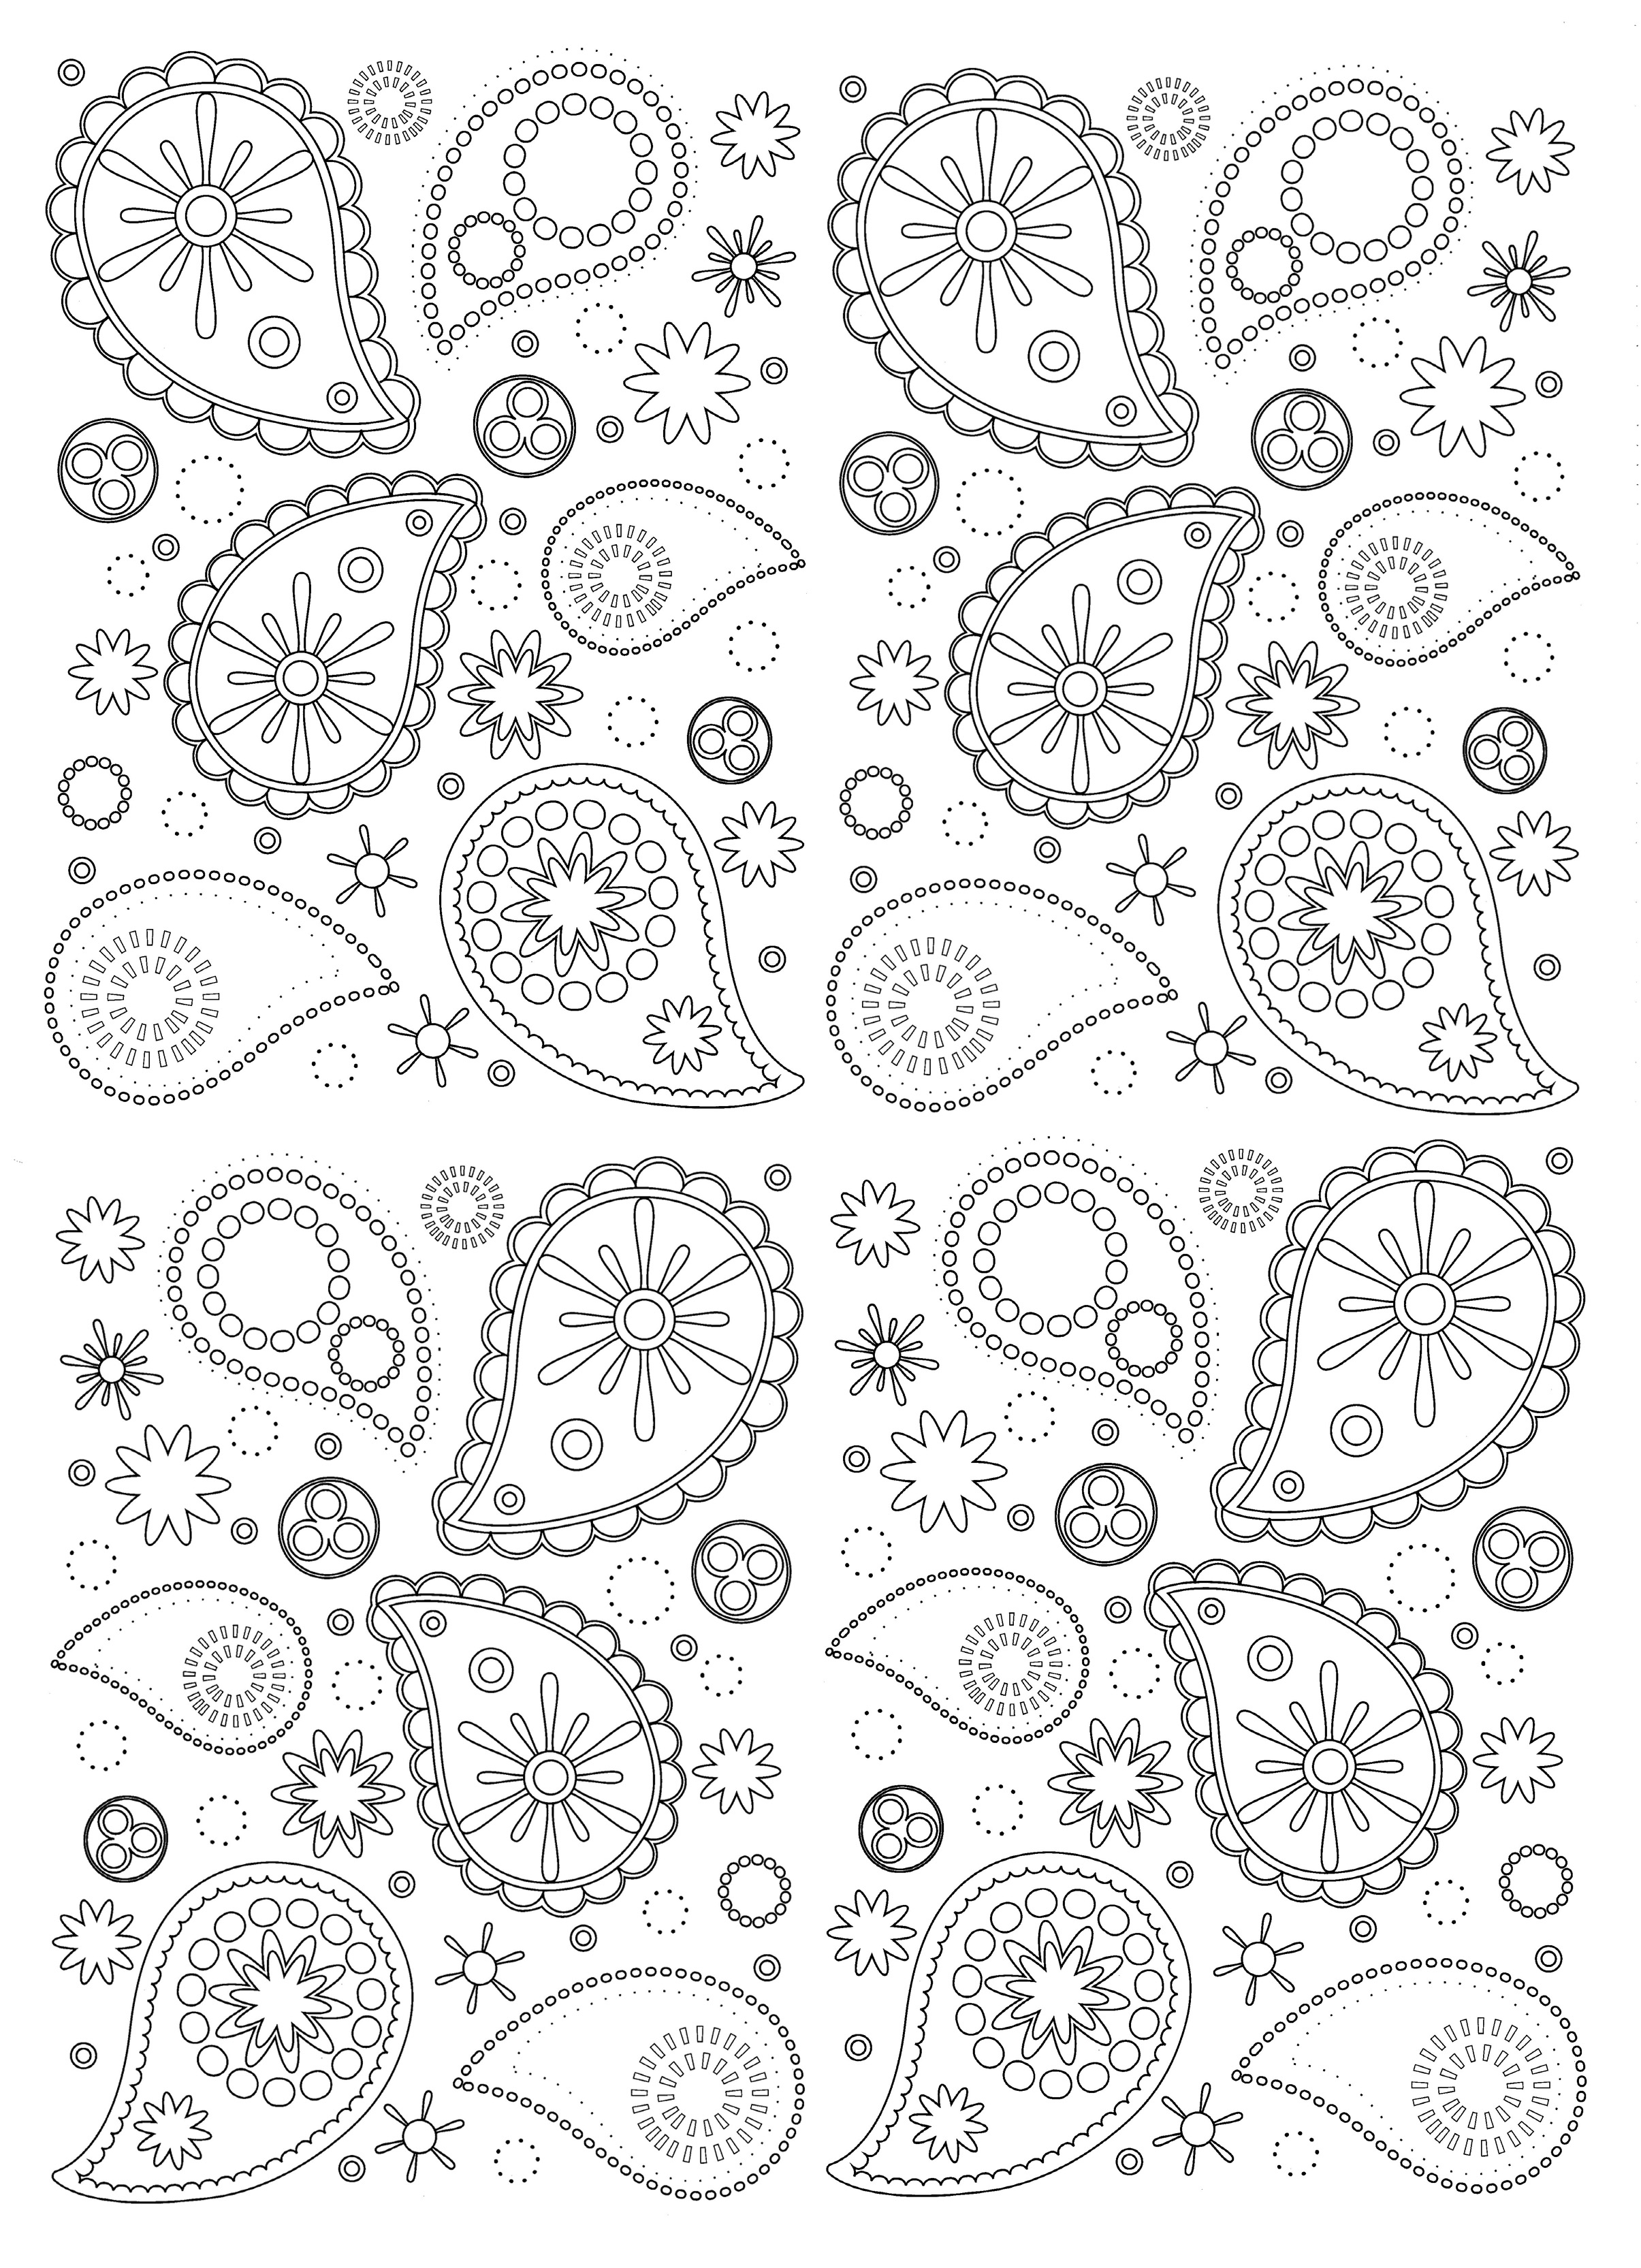 simple patterns to colour top 20 free printable pattern coloring pages online to patterns simple colour